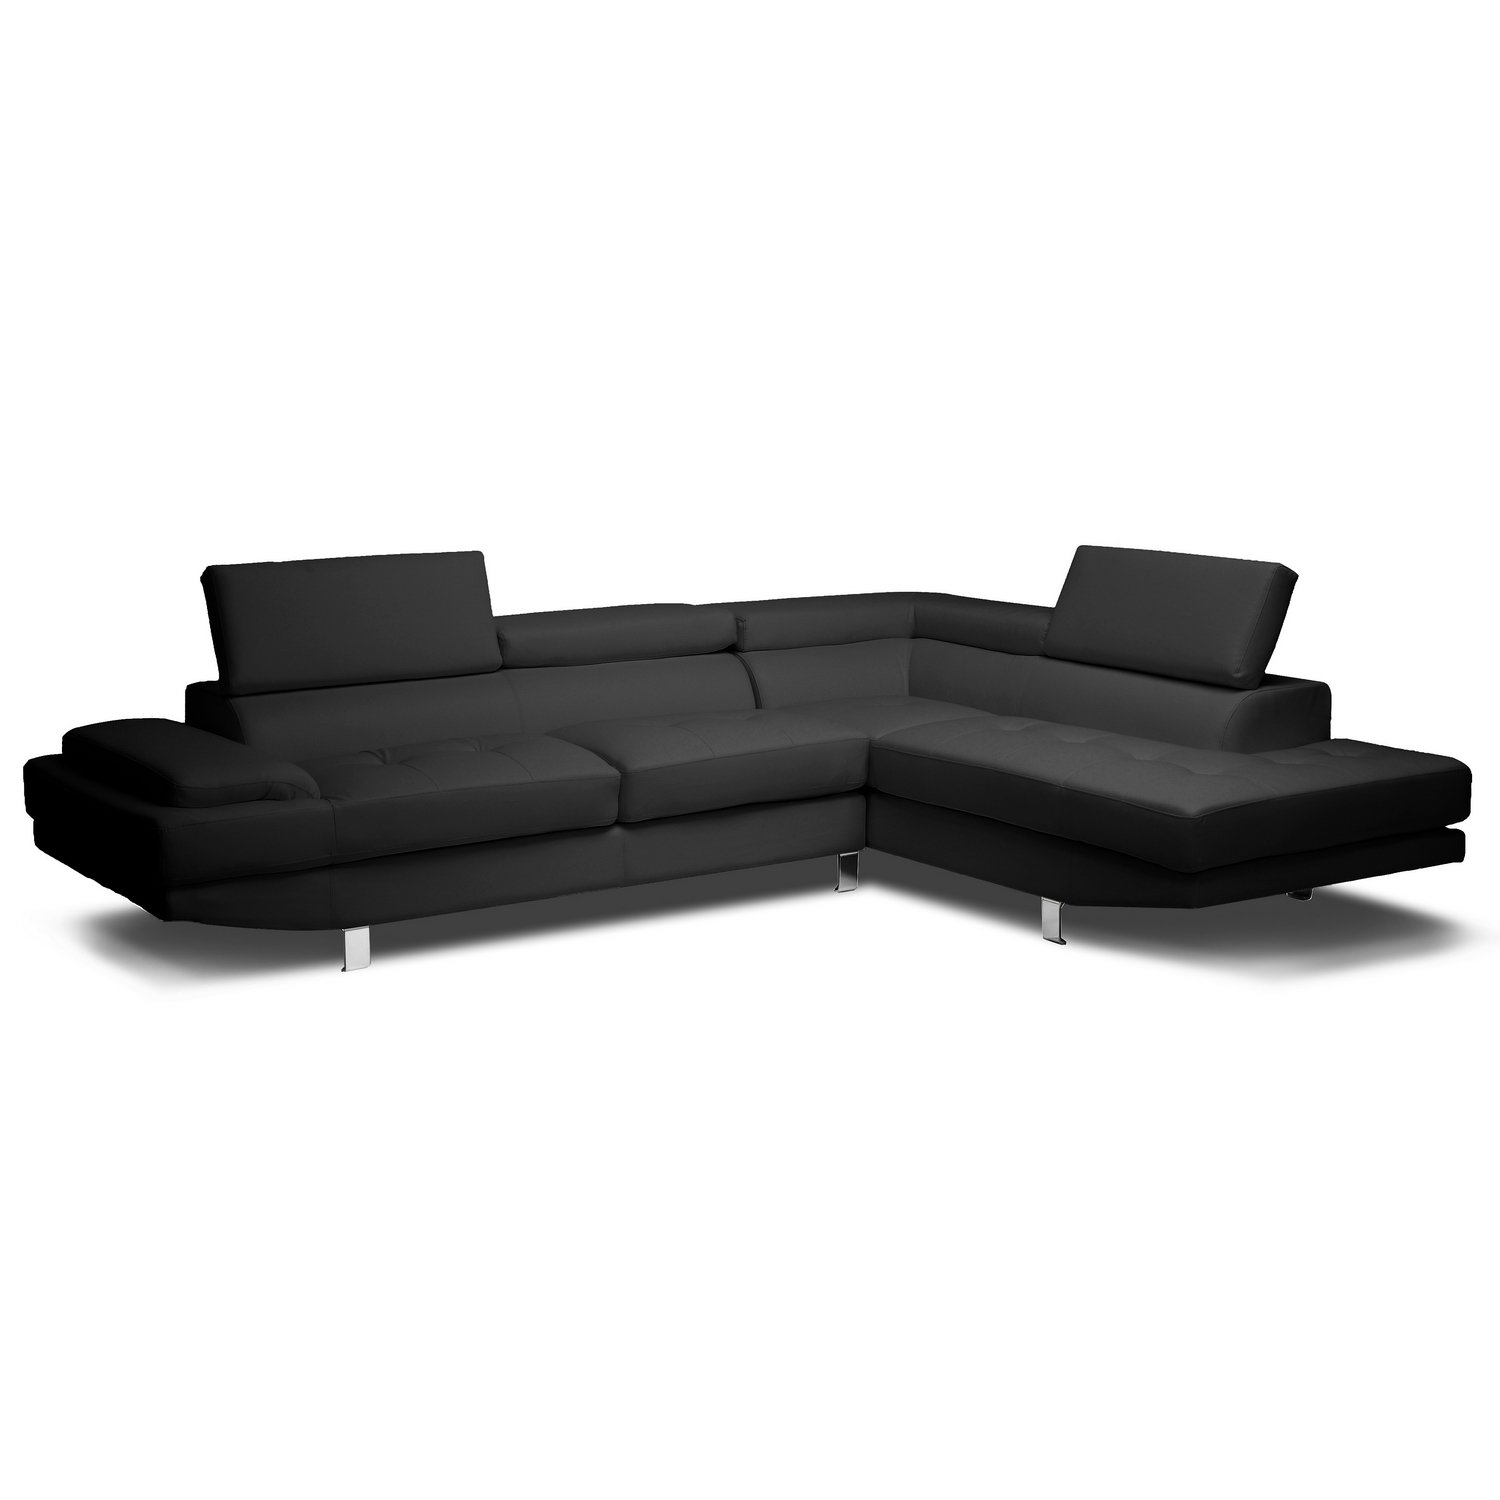 couch black sofas modern image elegant sale sofa living with feet hardwood sectional leather room chaise